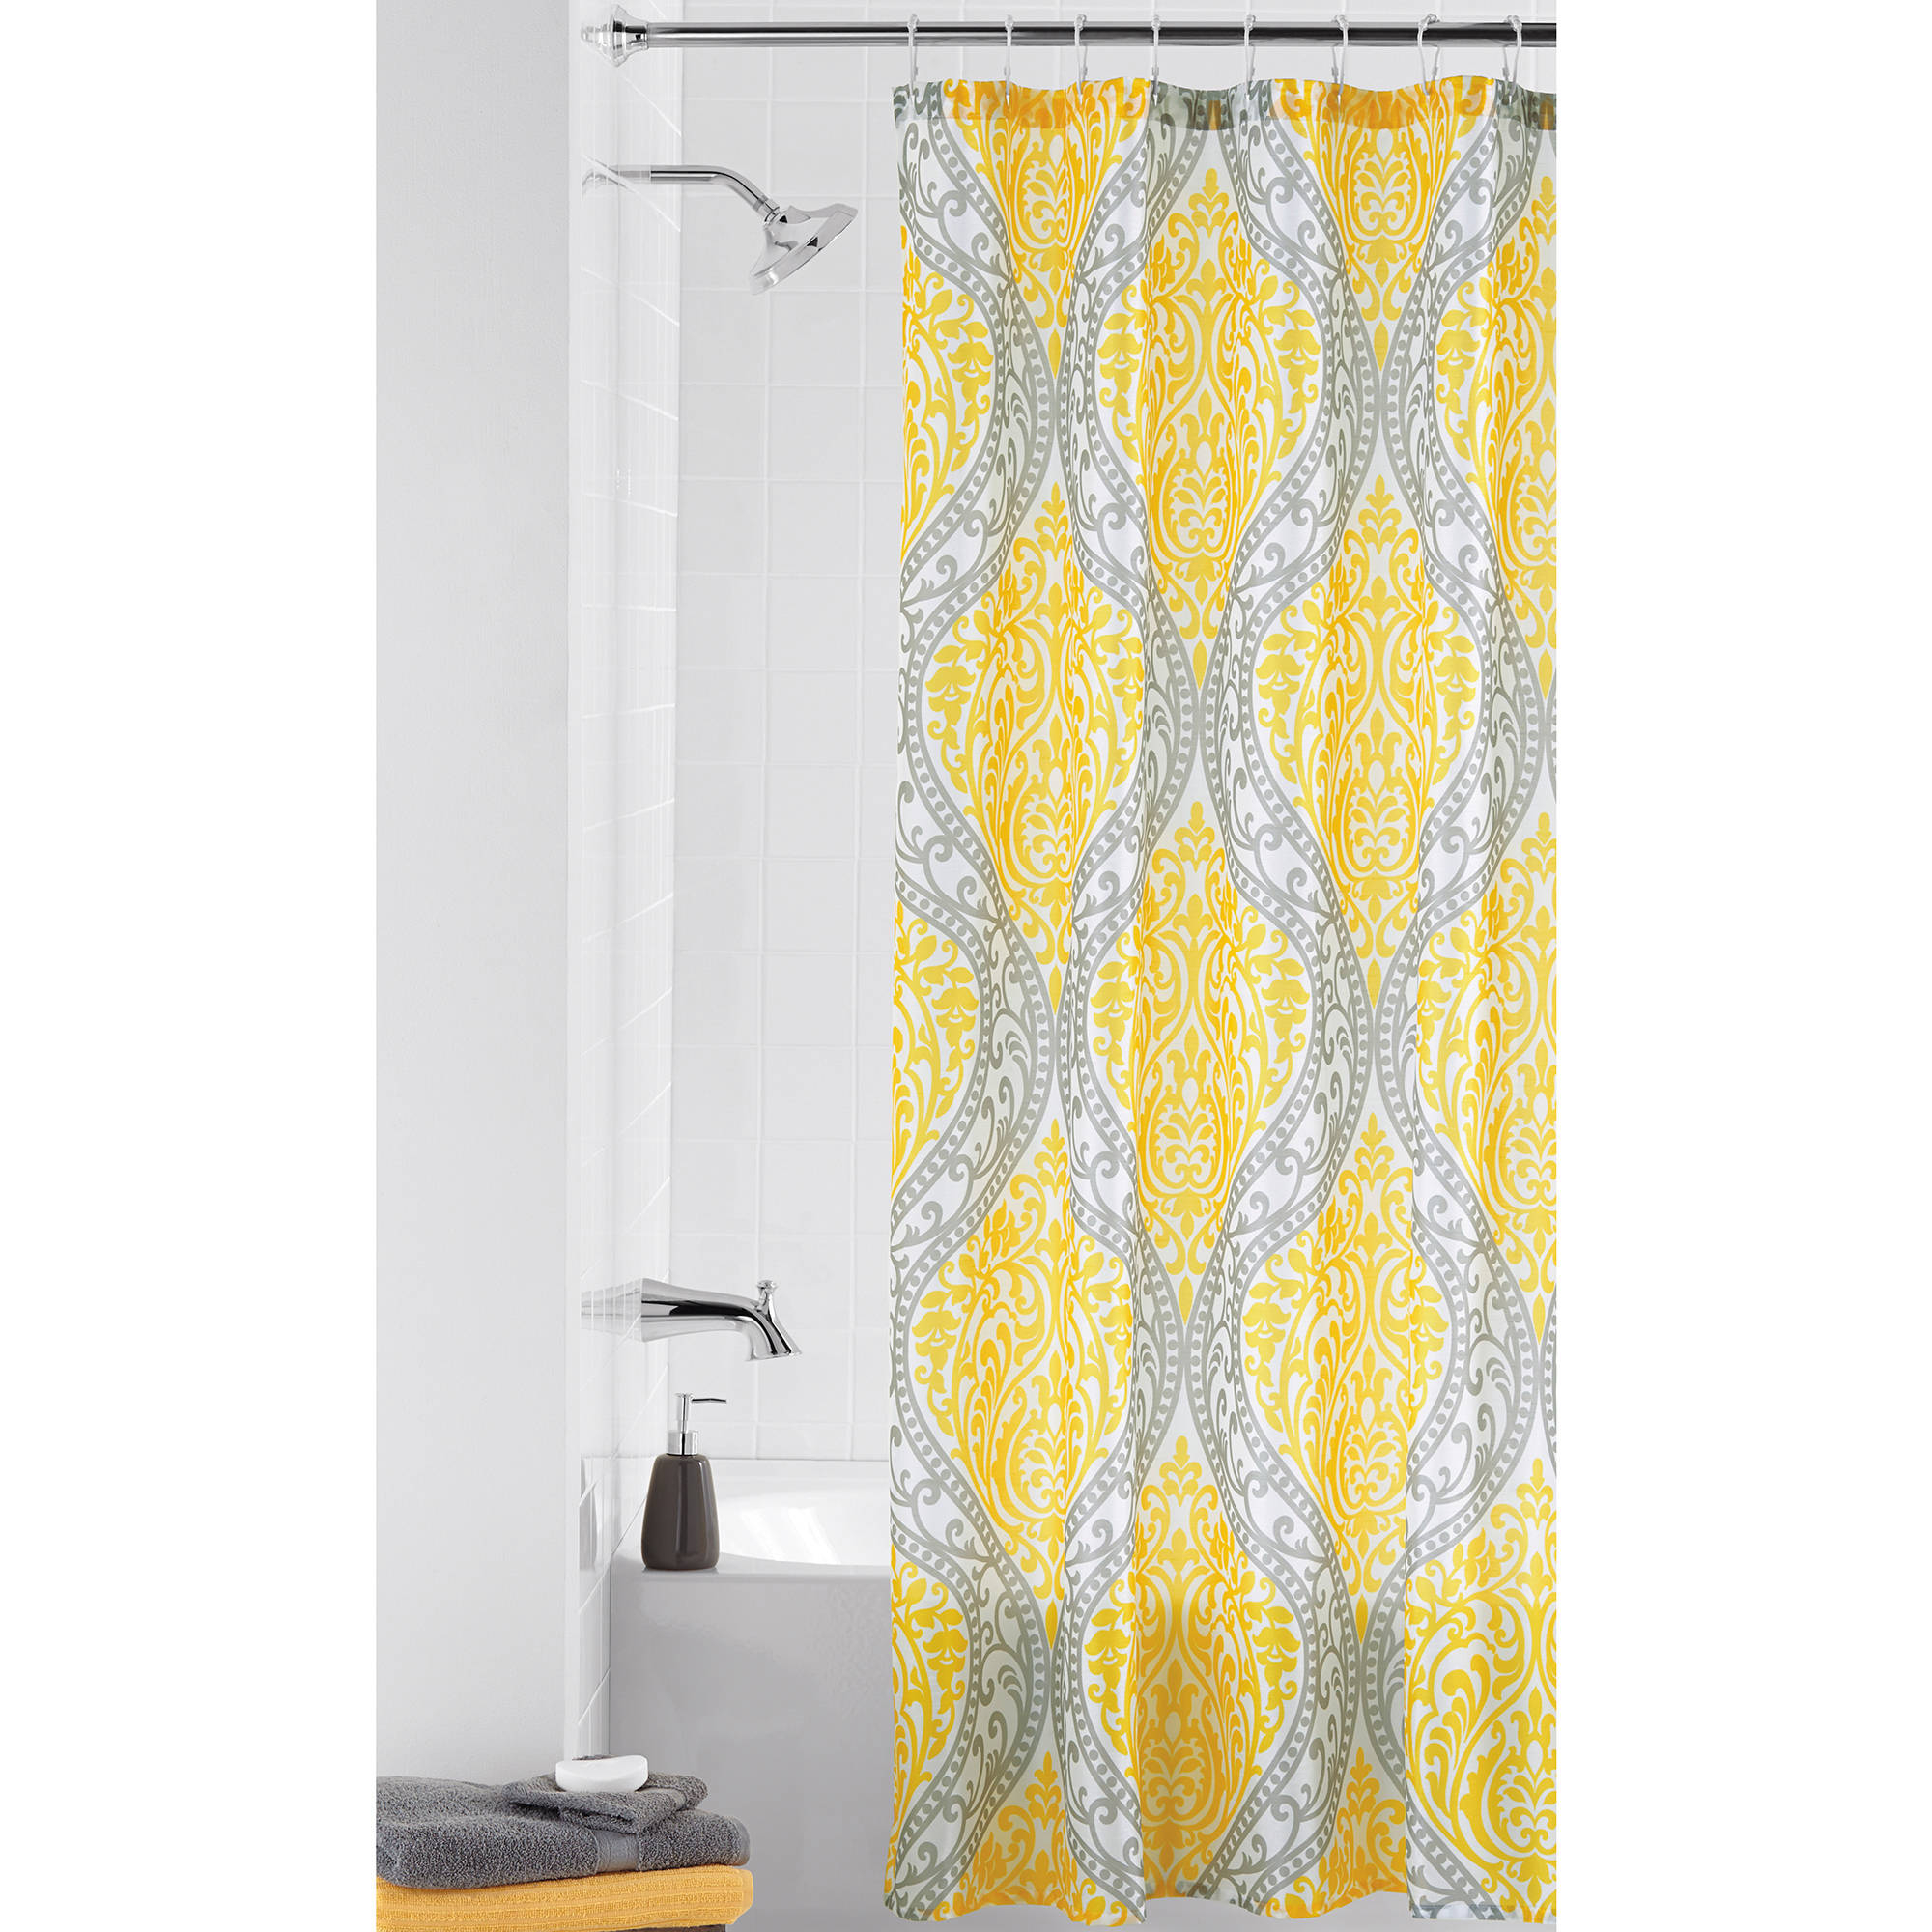 yellow black and gray shower curtain shower curtains ideas. Black Bedroom Furniture Sets. Home Design Ideas